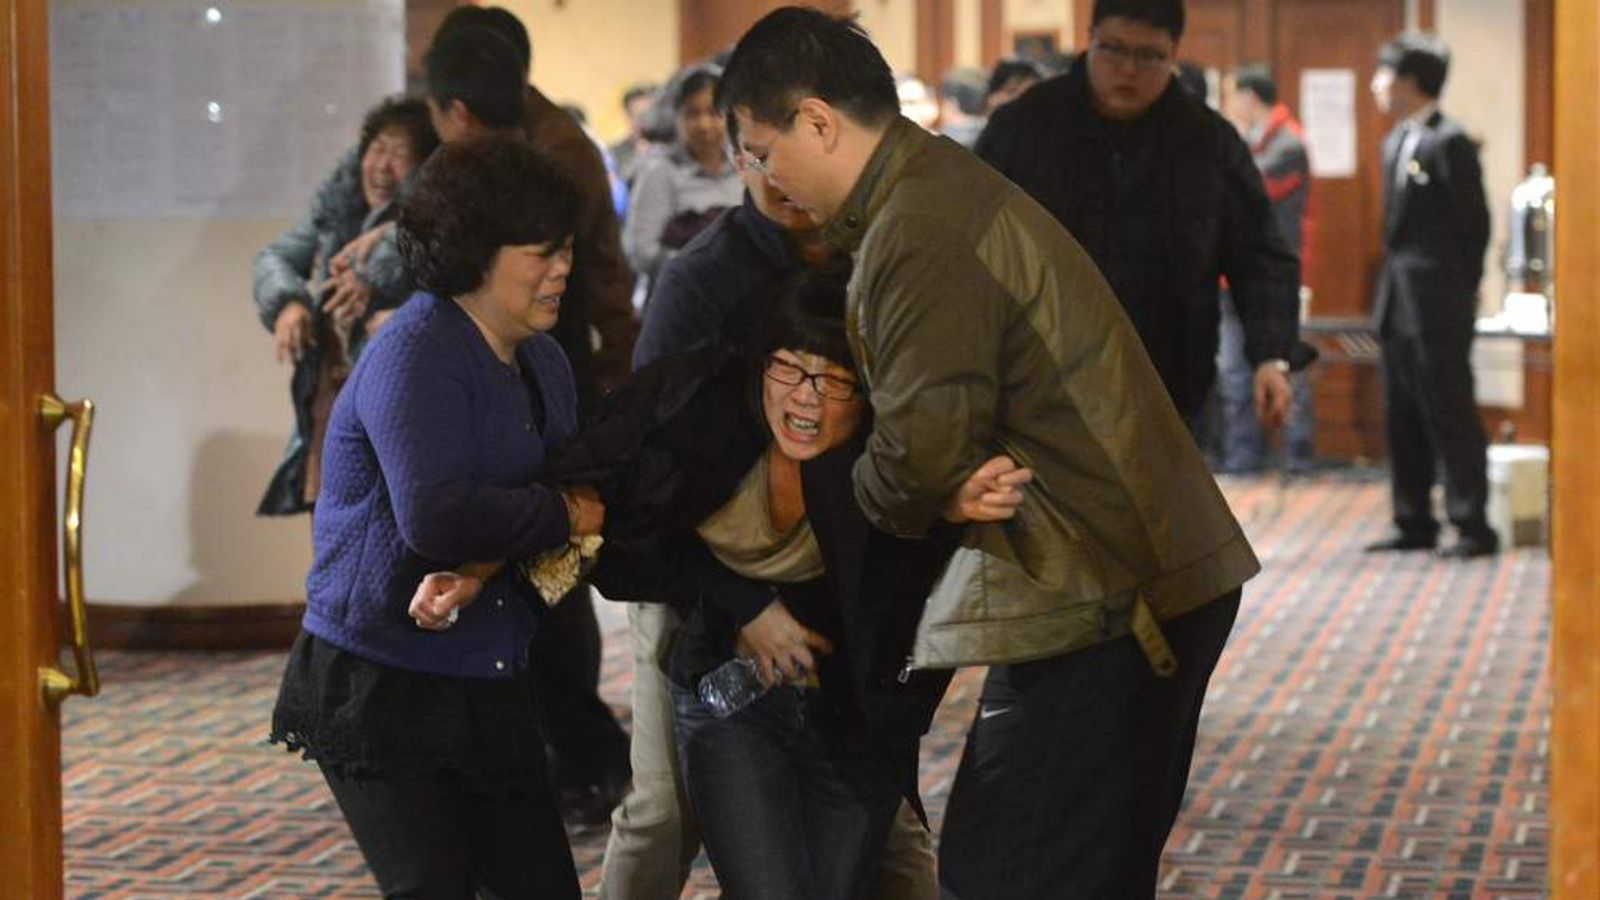 Relatives of passengers on Malaysia Airlines flight MH370 are told the plane was lost in the southern Indian Ocean.